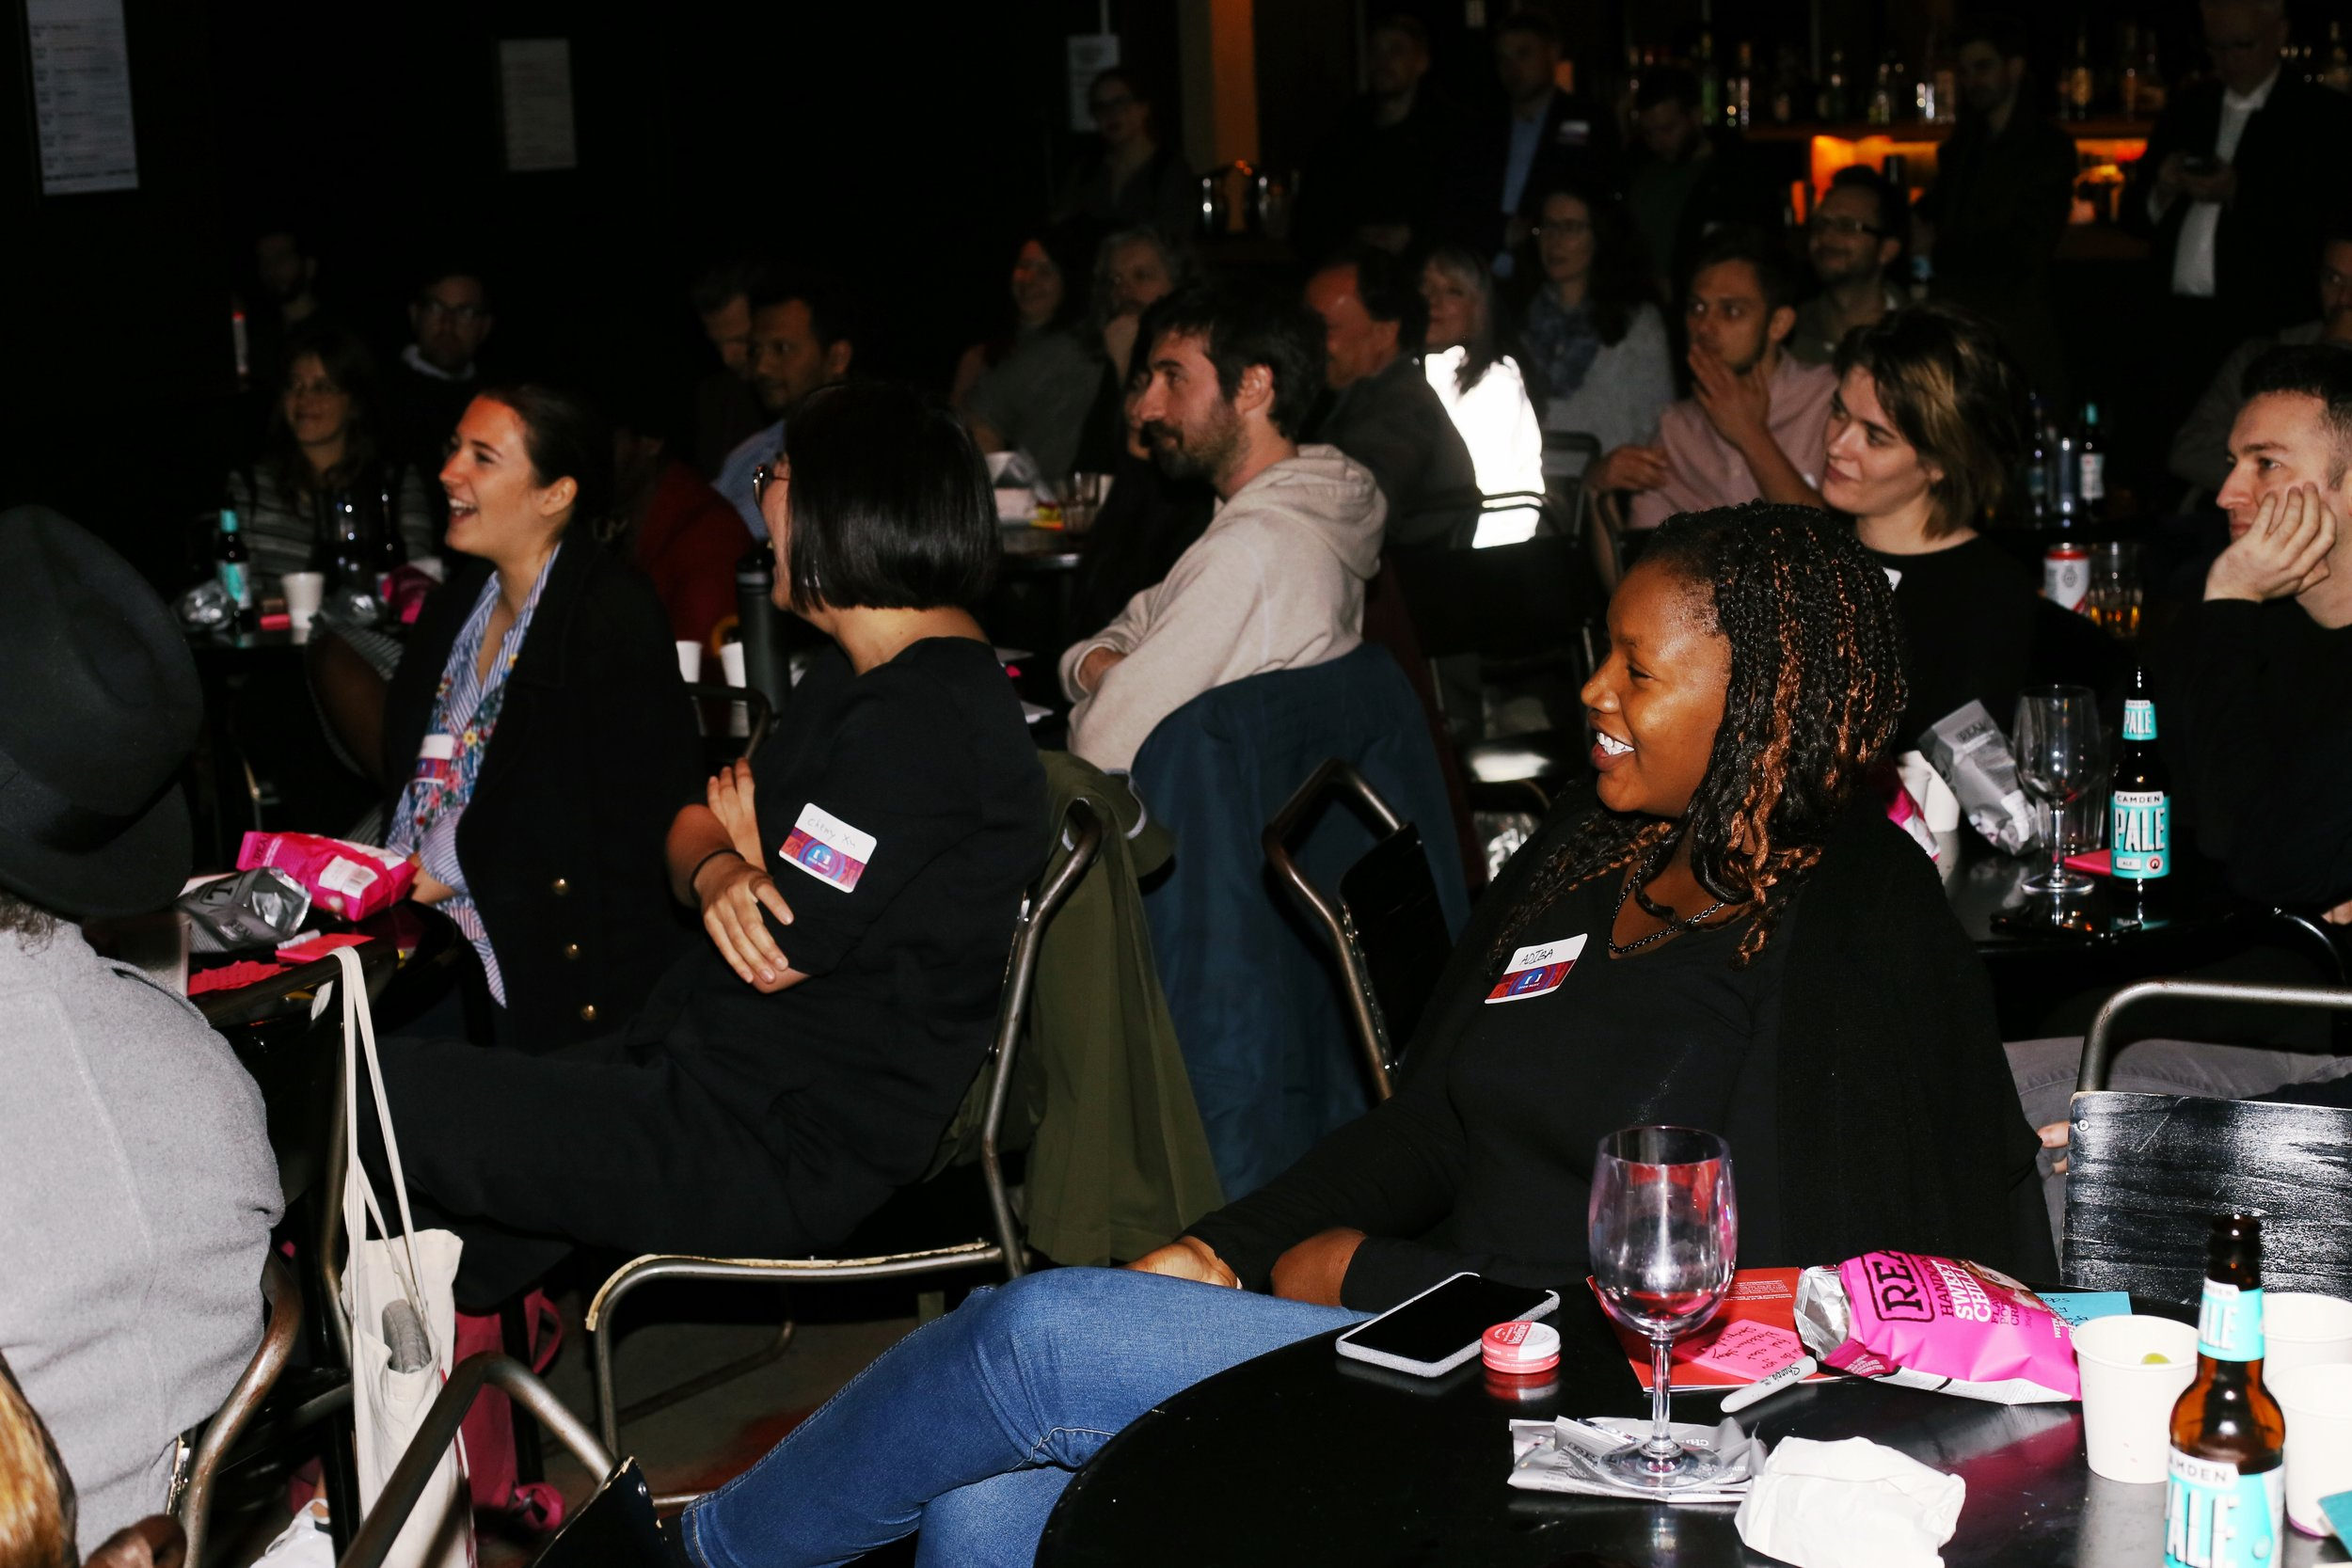 Local artists, Berklee alumni and Open Music members come together at the Ace Hotel Shoreditch London artist event